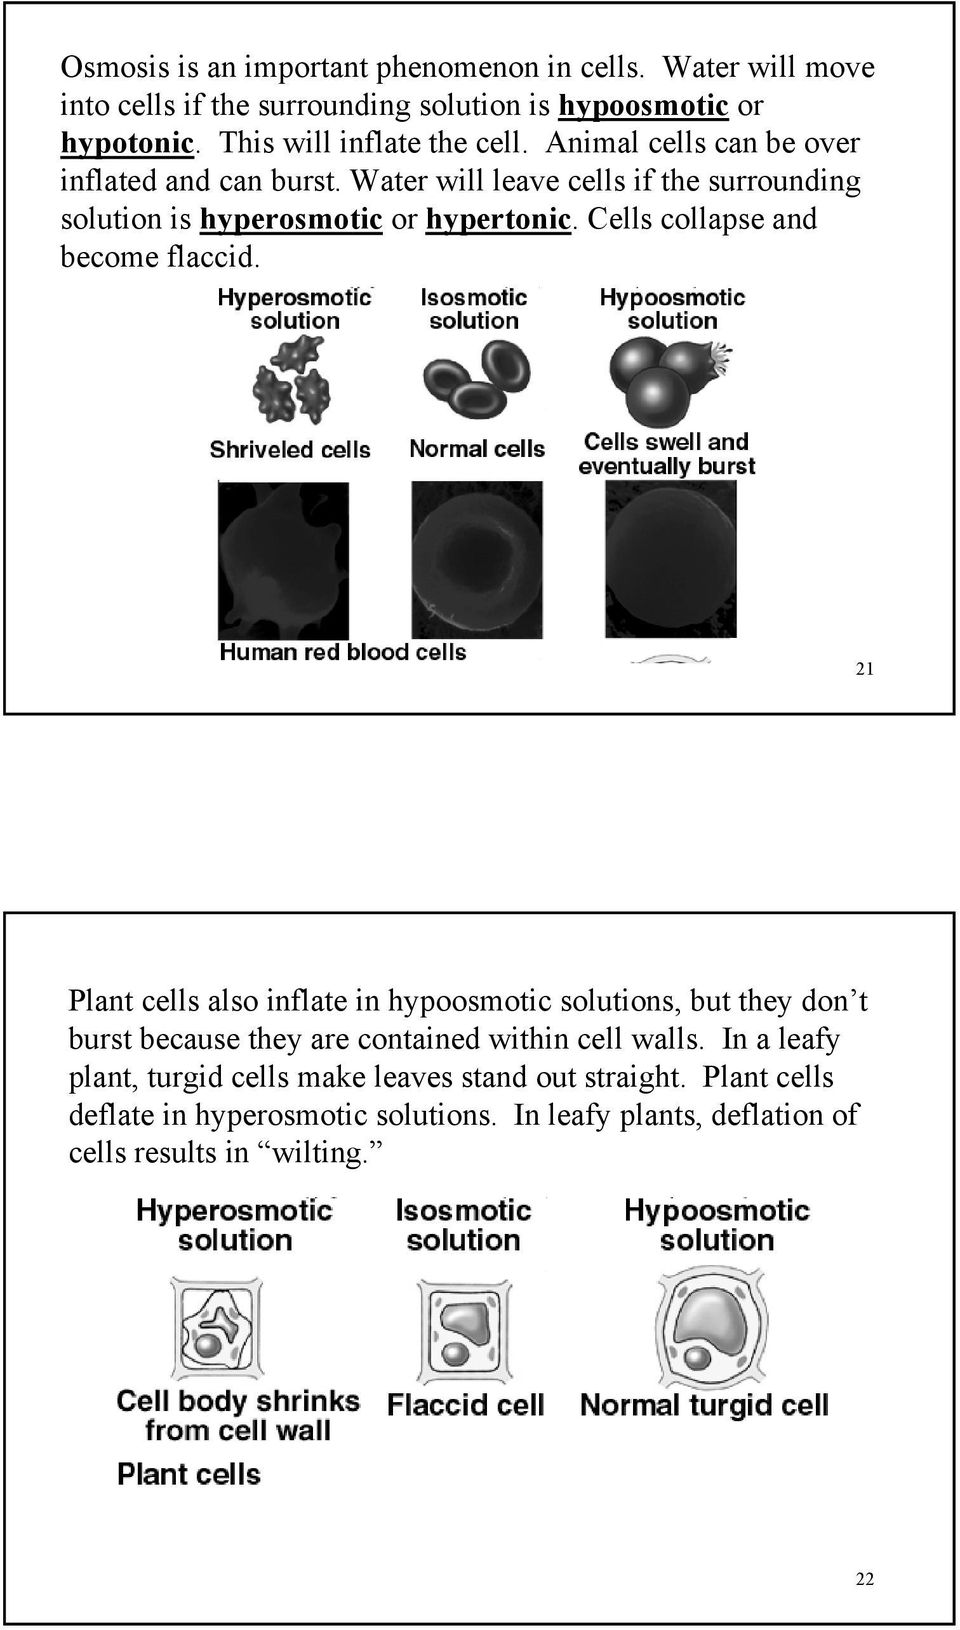 Water will leave cells if the surrounding solution is hyperosmotic or hypertonic. Cells collapse and become flaccid.